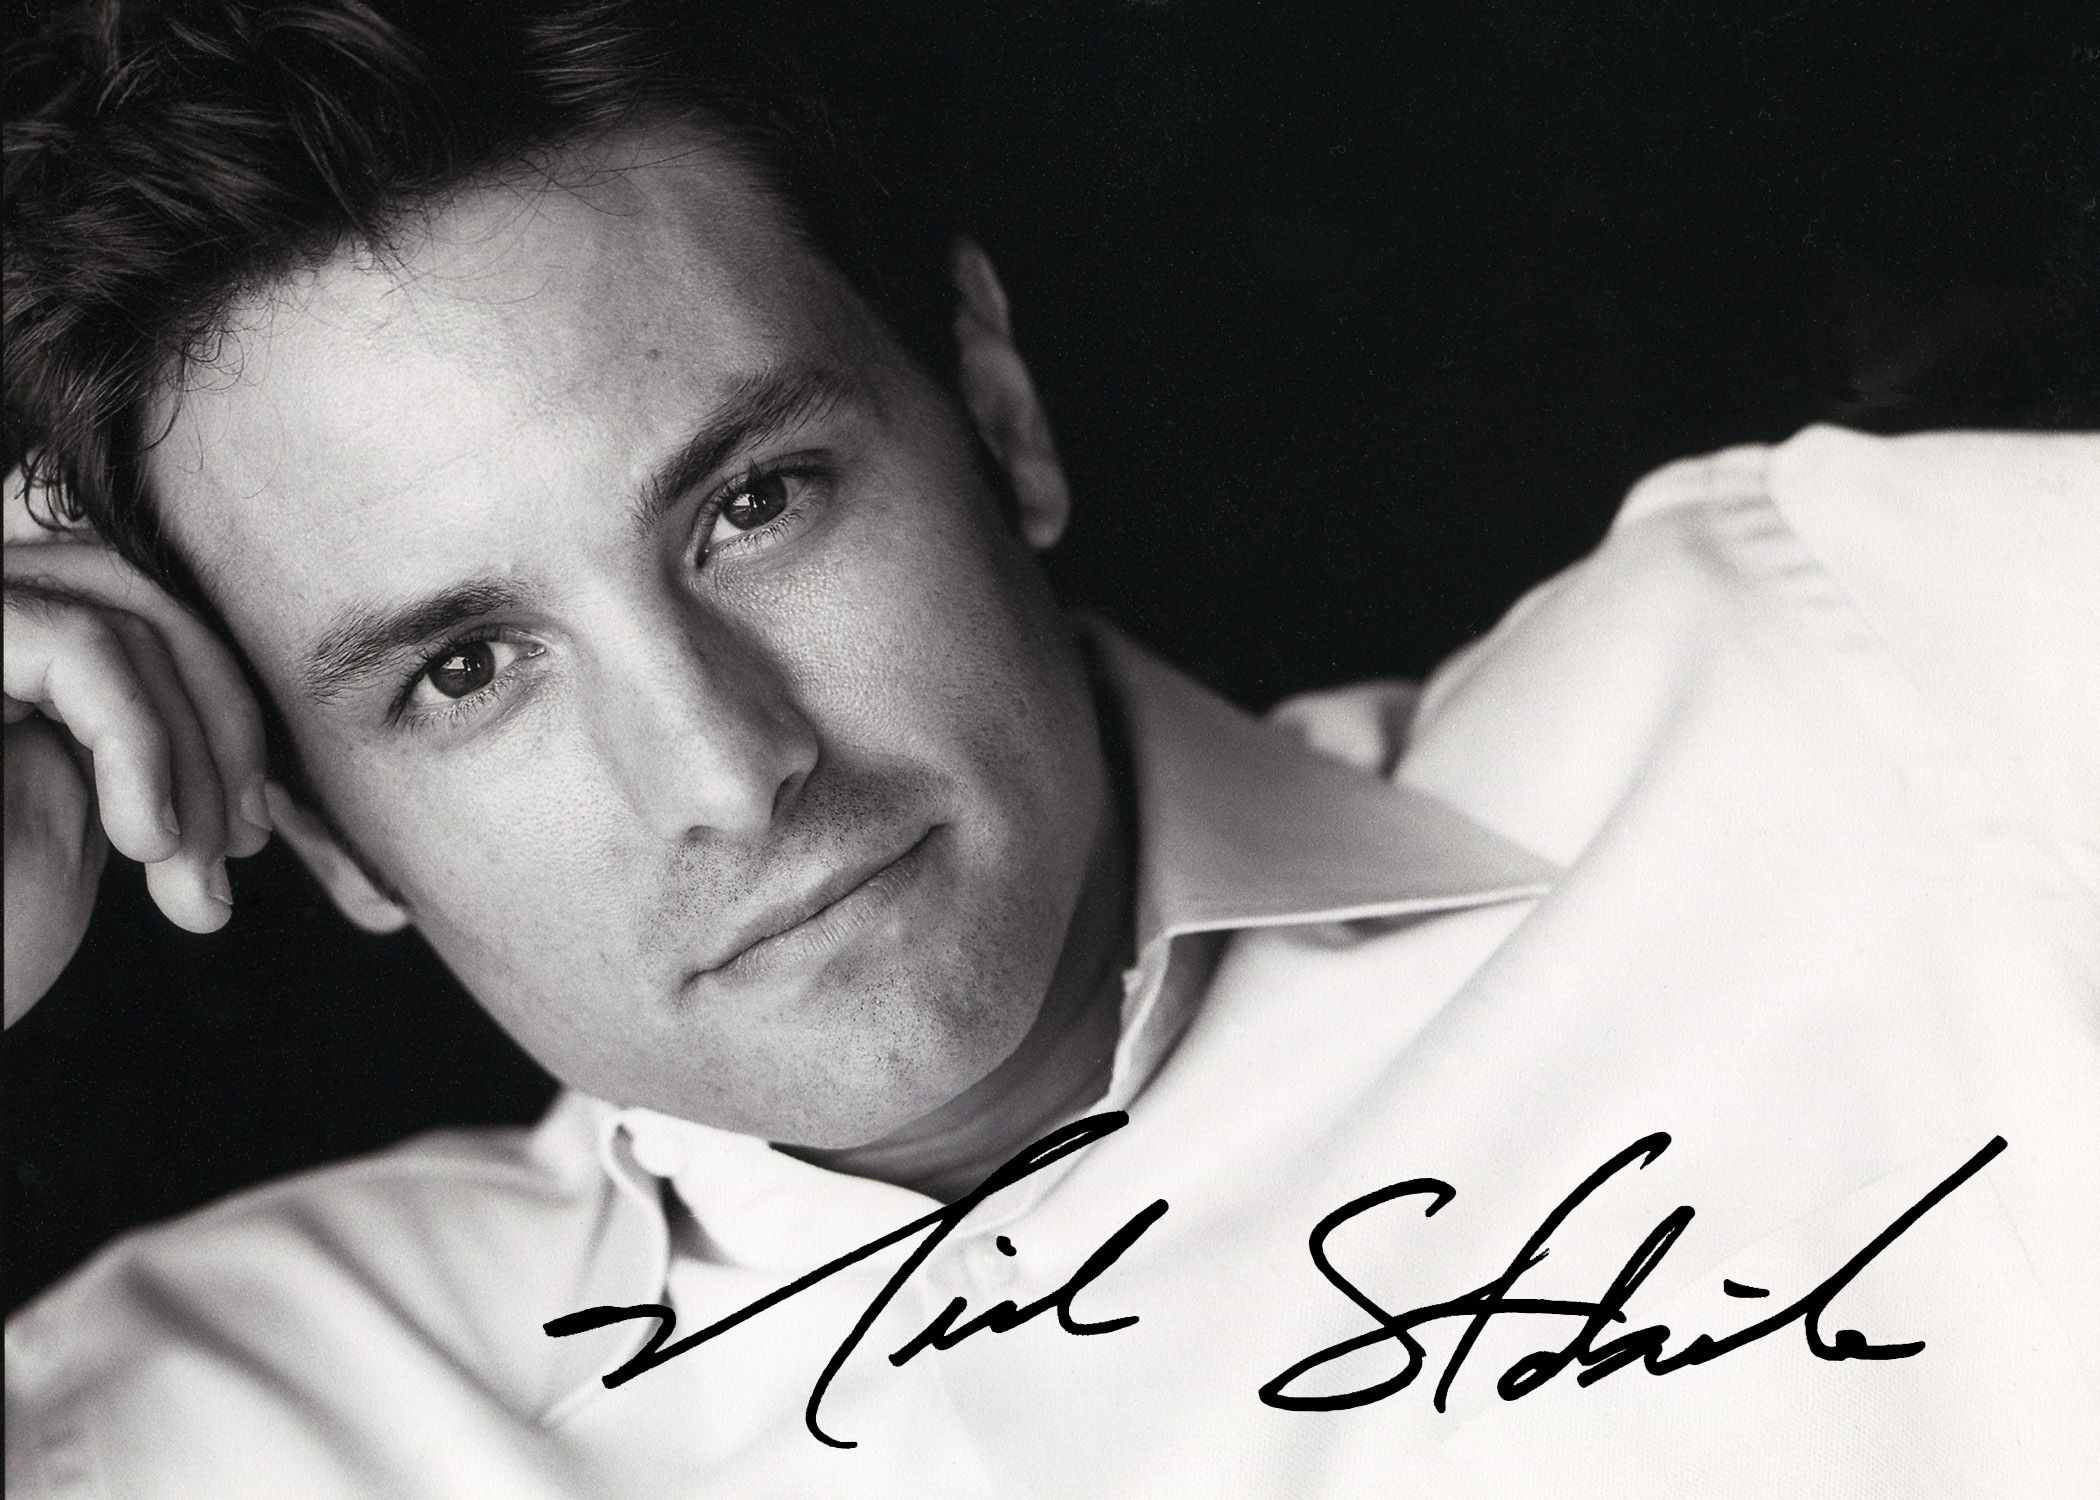 nick stabile wifenick stabile gh, nick stabile age, nick stabile twitter, nick stabile imdb, nick stabile nutter, nick stabile tricia small, nick stabile actor, nick stabile instagram, nick stabile general hospital, nick stabile net worth, nick stabile chiropractor, nick stabile bride of chucky, nick stabile charmed, ник стабиле, nick stabile shirtless, nick stabile wife, nick stabile gay, nick stabile biography, nick stabile camille grammer, nick stabile 2014